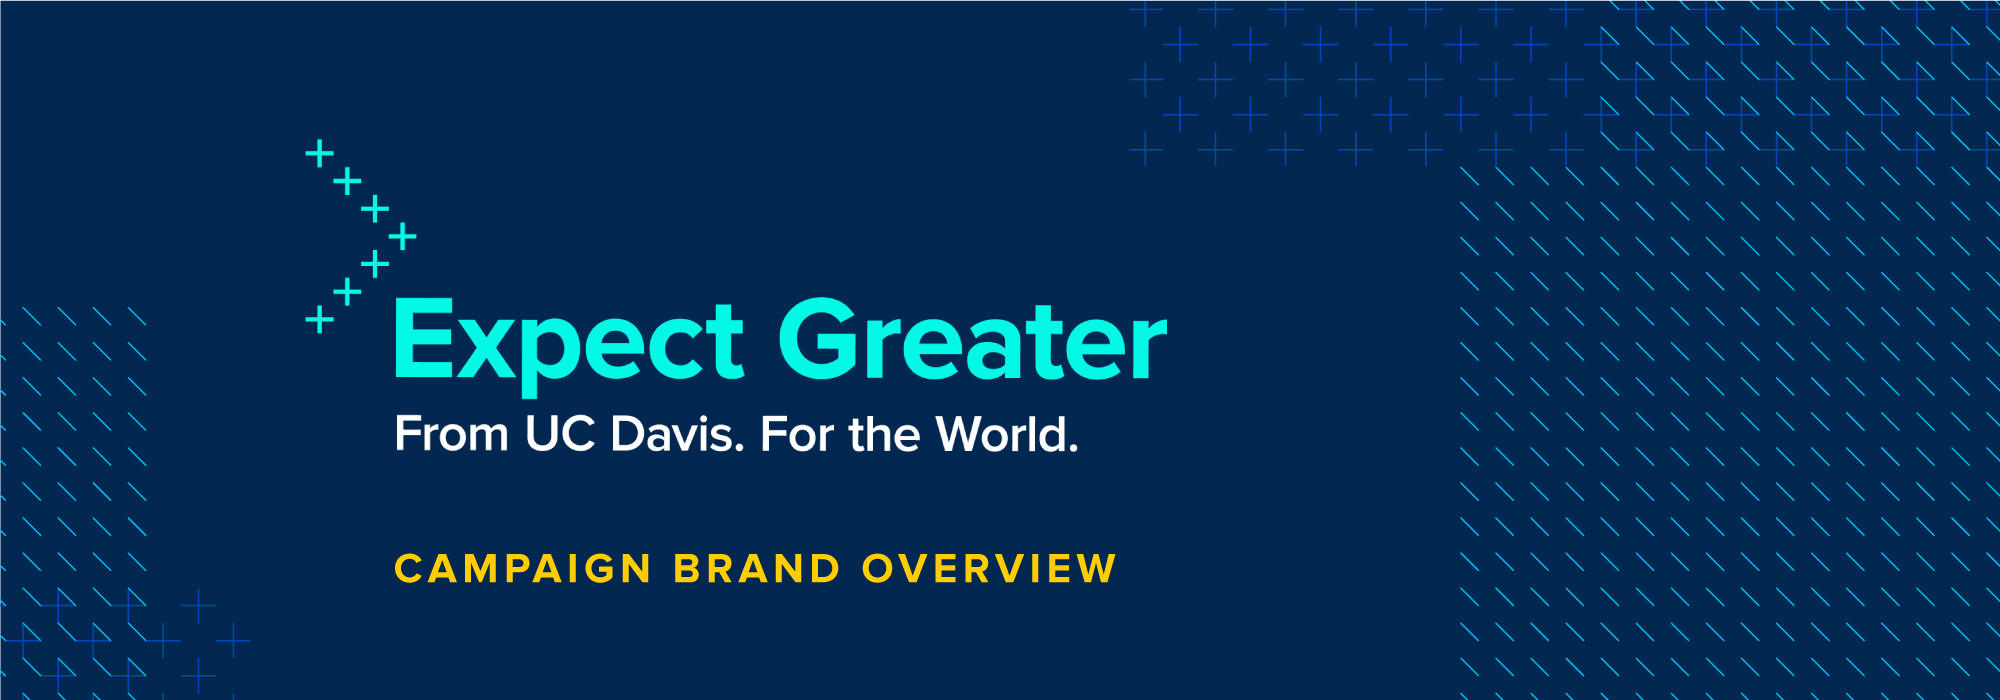 Expect Greater: Campaign Brand Overview